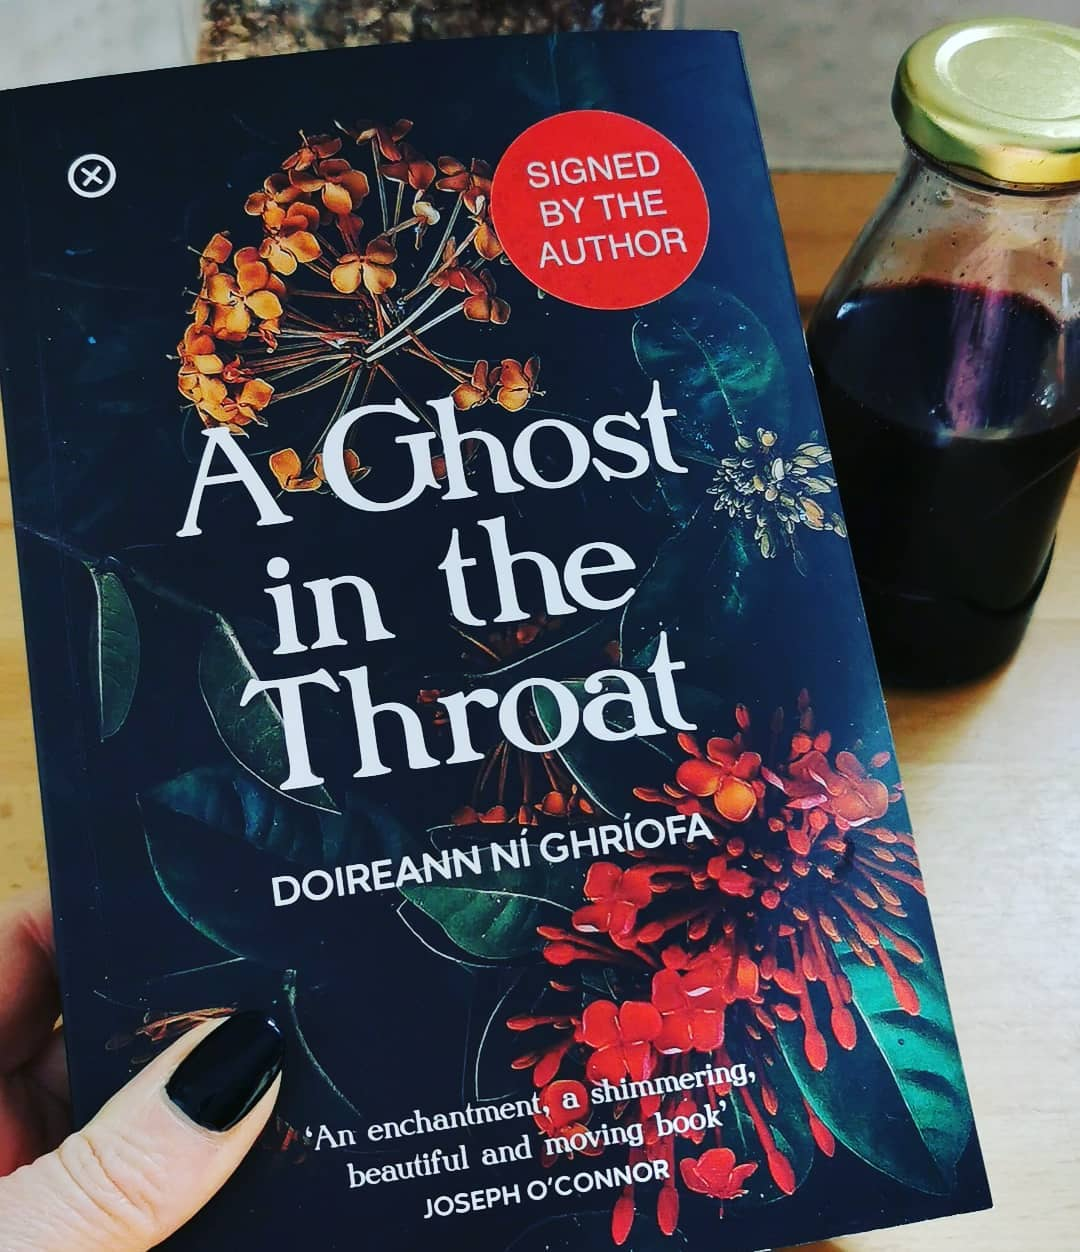 A ghost in the throat by Doireann Ni Ghriofa. Really enjoyed this mix of getting to know about Doireann and her life as well as her utter fascination with Eibhlin Dubh Ni Chonaill. Eibhlin composed Caoineash, a lament for her husband Art when he was murdered and Doireann goes on a mystery research trail trying to find out why Eibhlin was deleted from history. The book also contains Doireann's translation of the poem. This book was a easy but challenging read and one I read ultra quickly. Recommended from me!